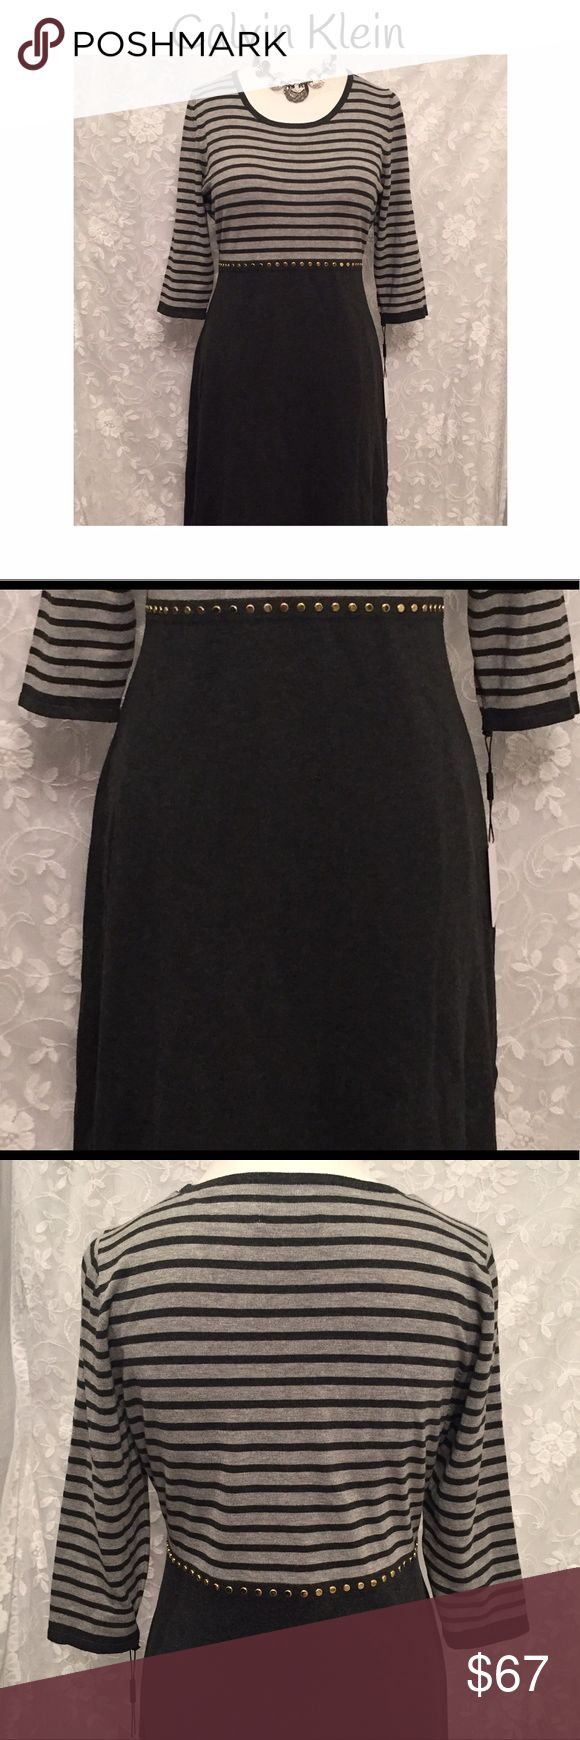 """Calvin Klein midi dress with rivets! Beautiful Calvin Klein midi dress in two tone gray with rivets around the waist. 3/4 sleeves. from the waist to the bottom measure 25"""". Fabric is 77% rayon and 23% nylon. Dry clean.(Necklace not for sale!) Calvin Klein Dresses Midi"""